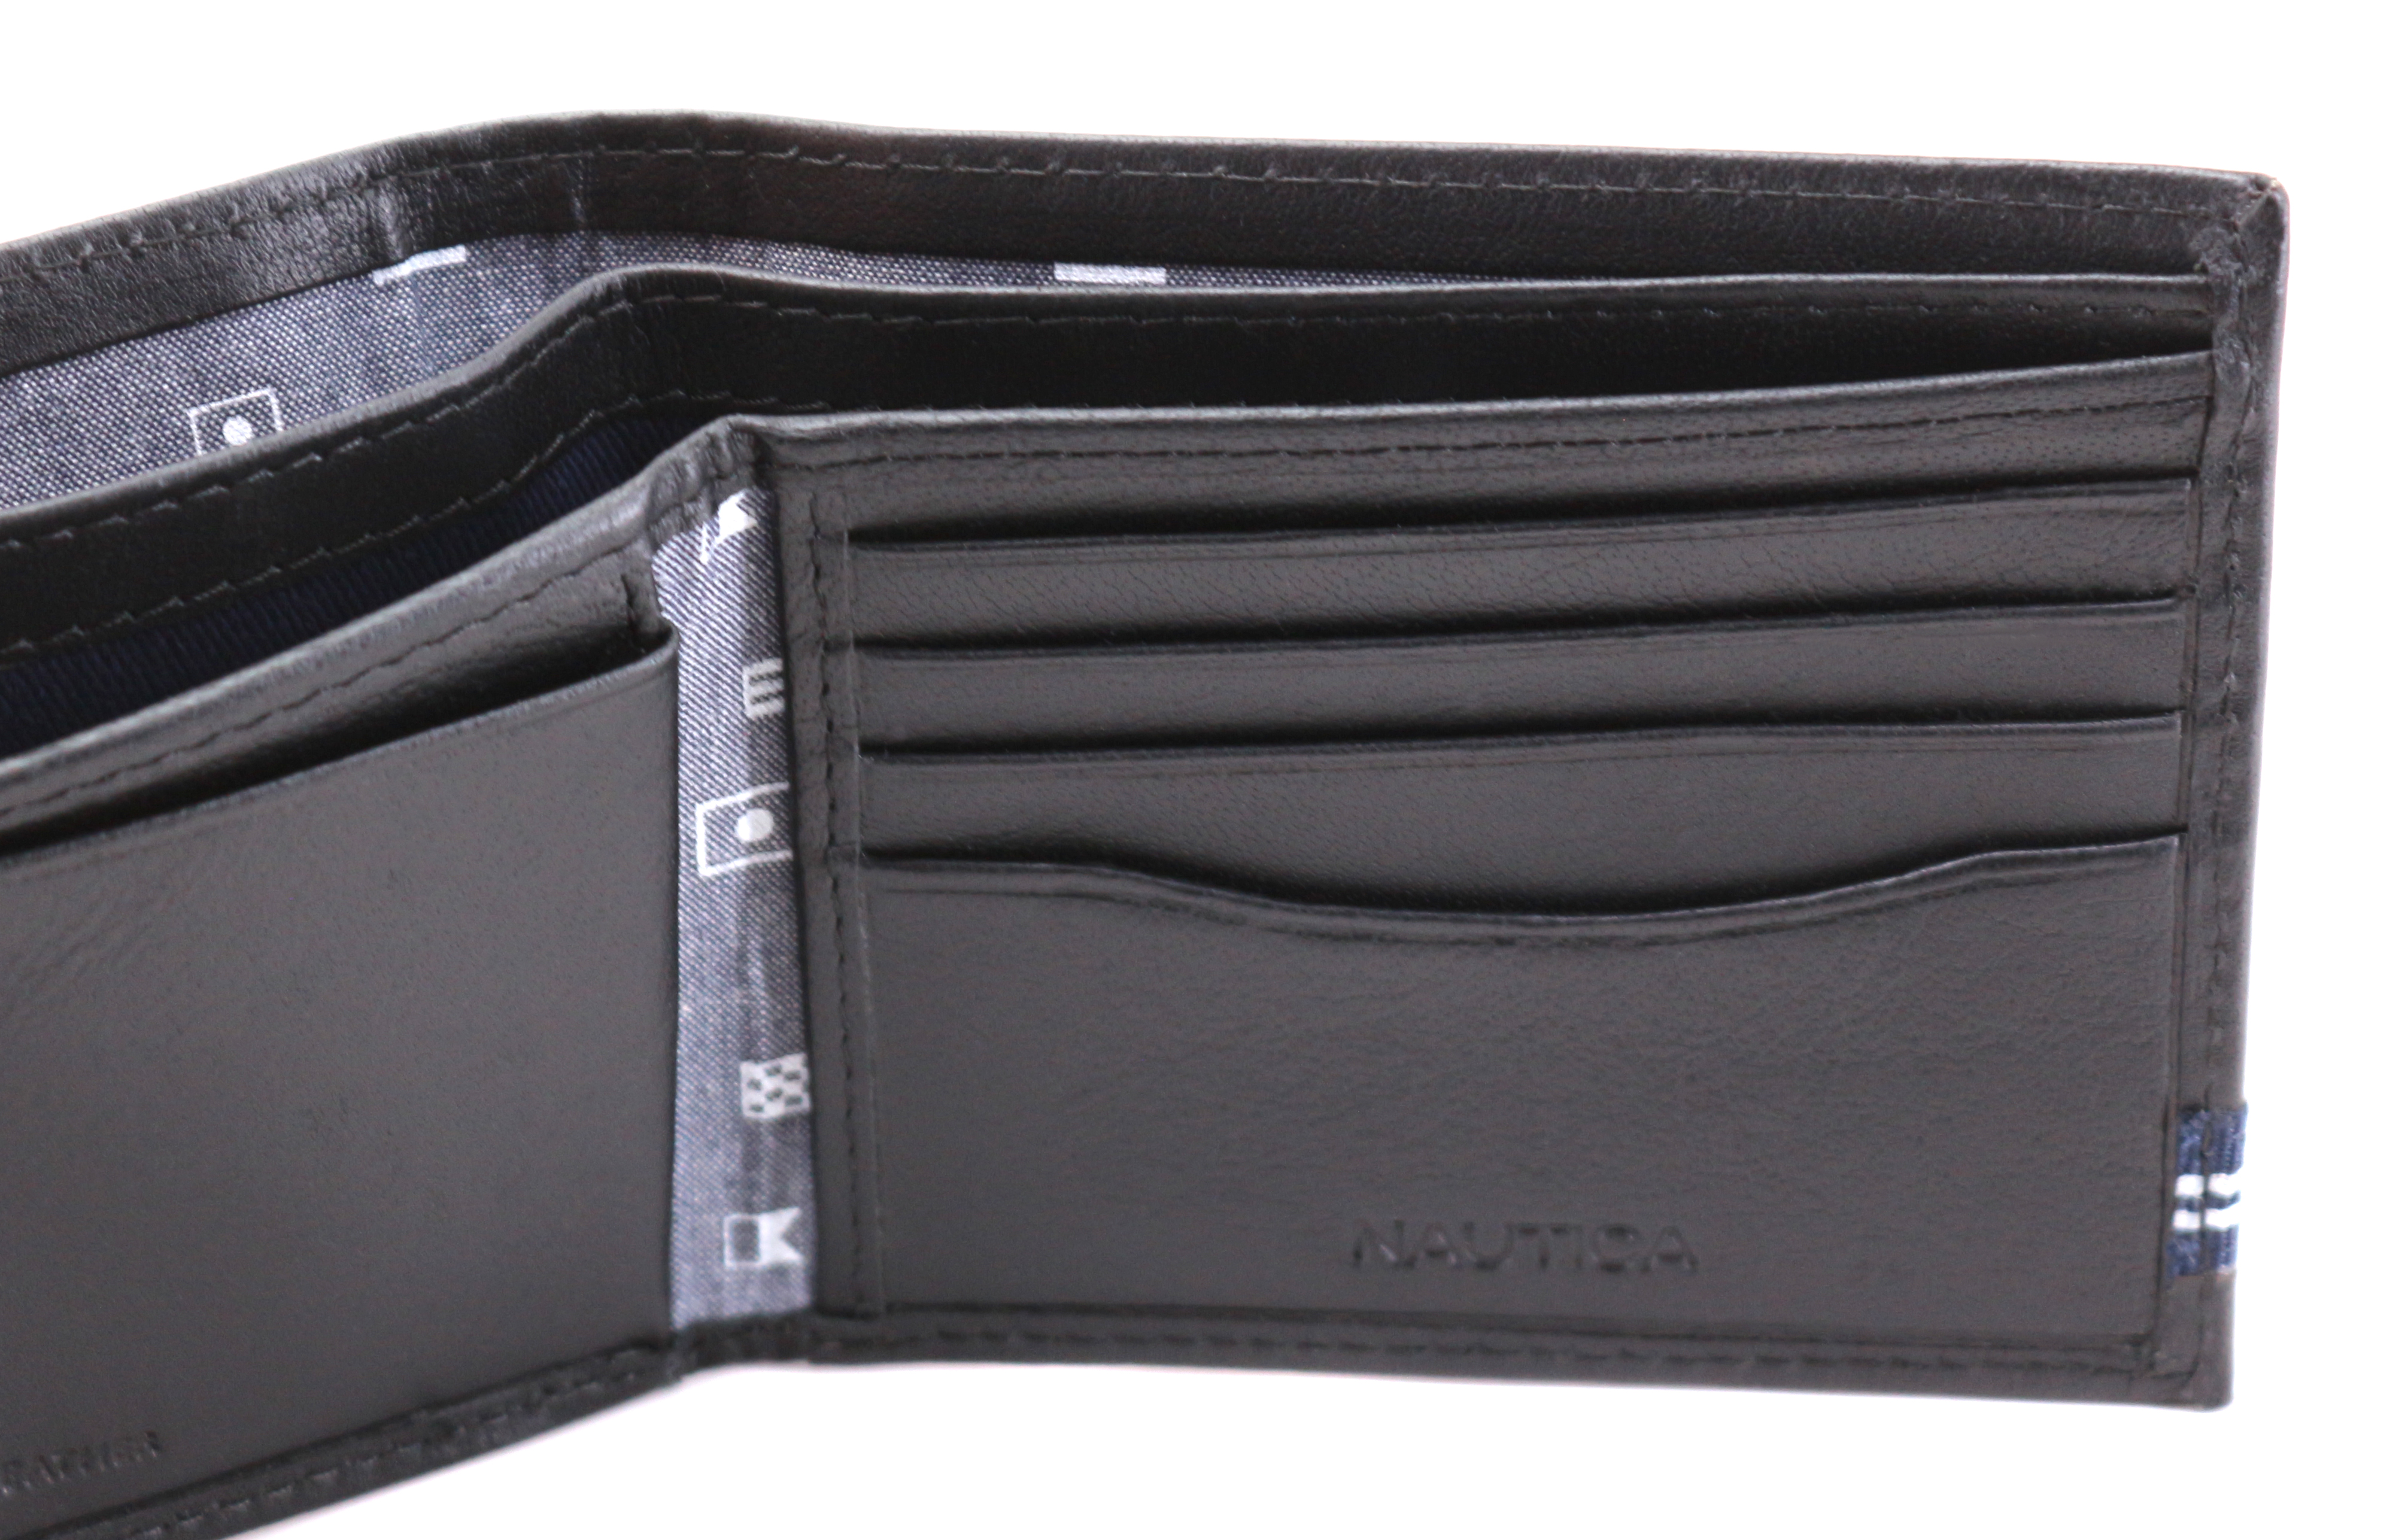 Nautica-Men-039-s-Genuine-Leather-Credit-Card-ID-Double-Billfold-Passcase-Wallet thumbnail 8